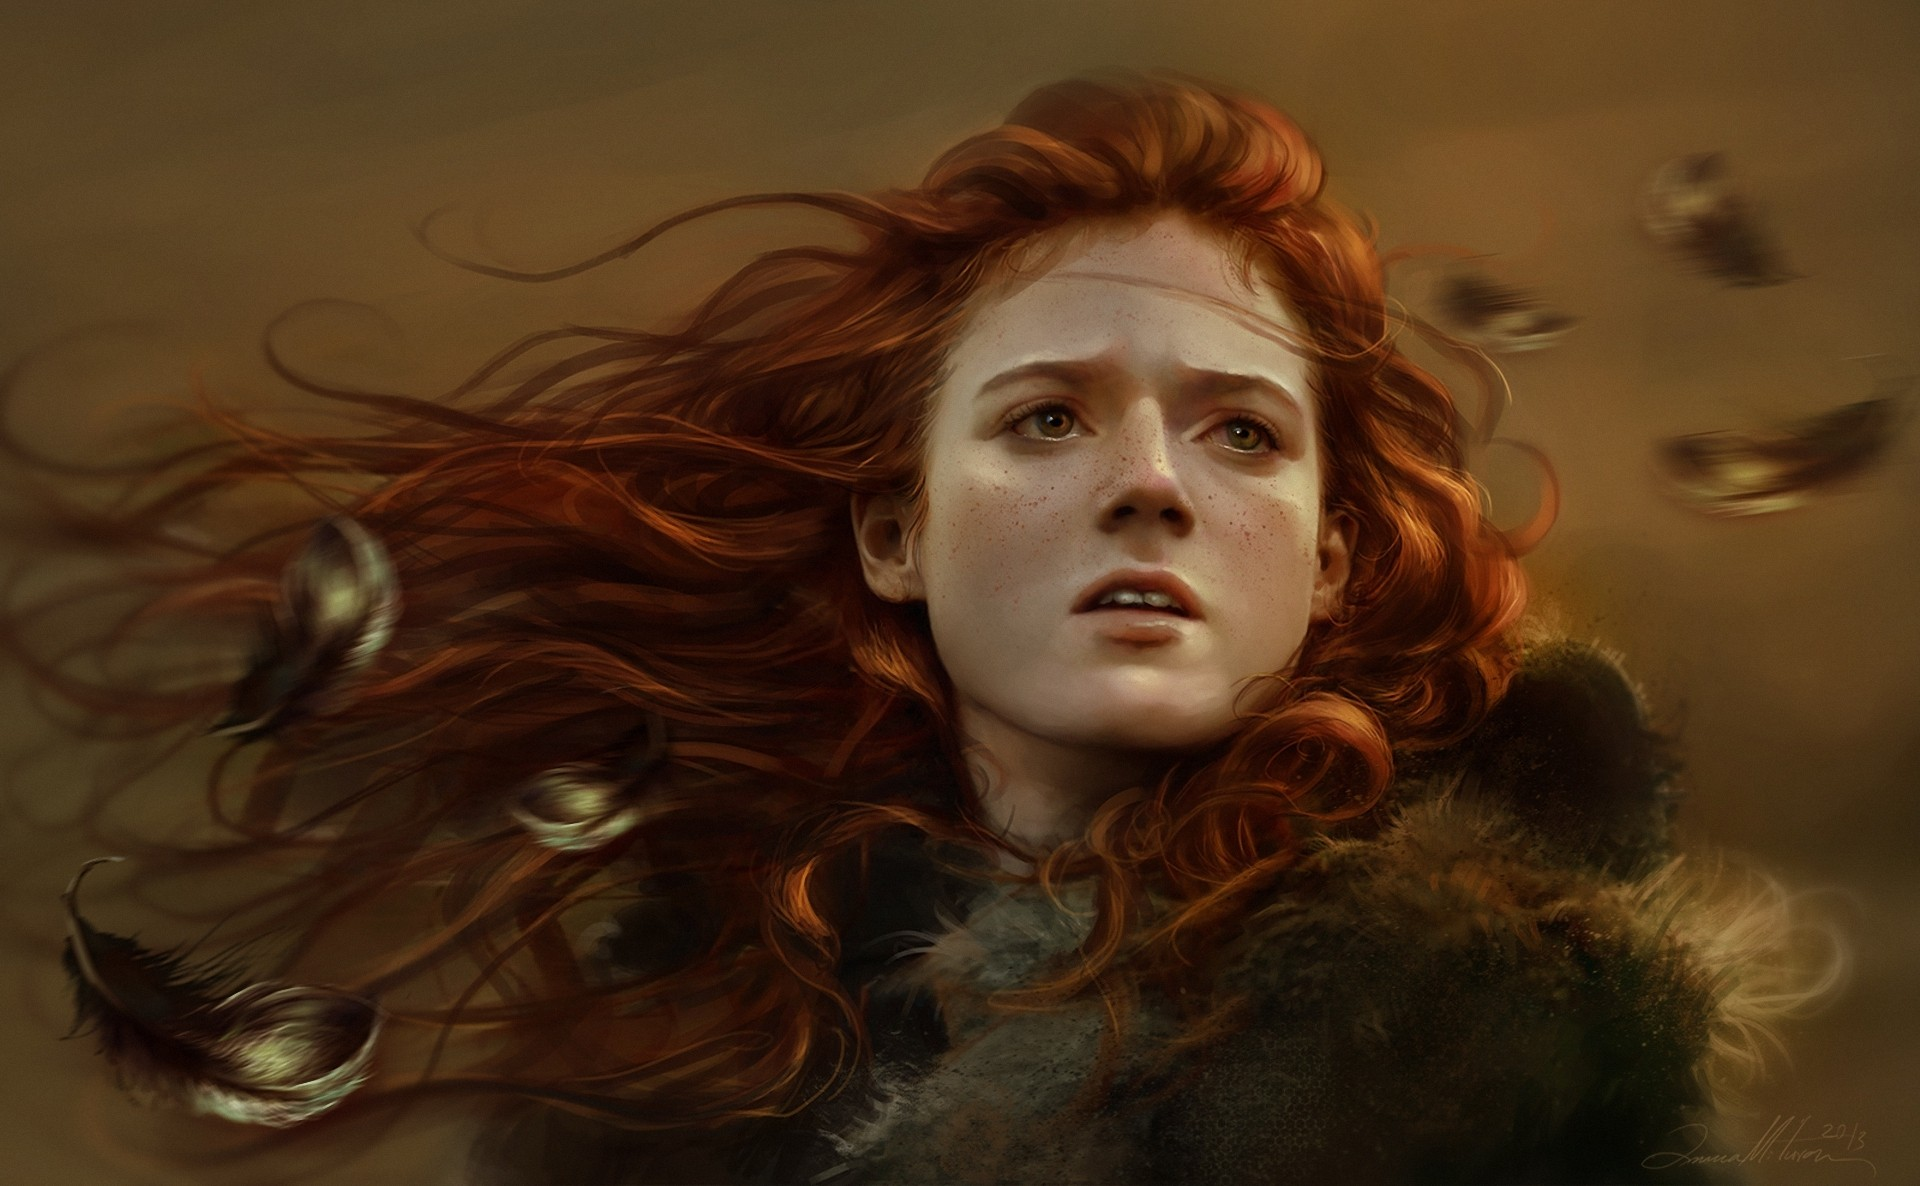 Ygritte Rose Leslie Game Of Thrones Artwork, HD Tv Shows, 4k Wallpapers, Images, Backgrounds, Photos and Pictures